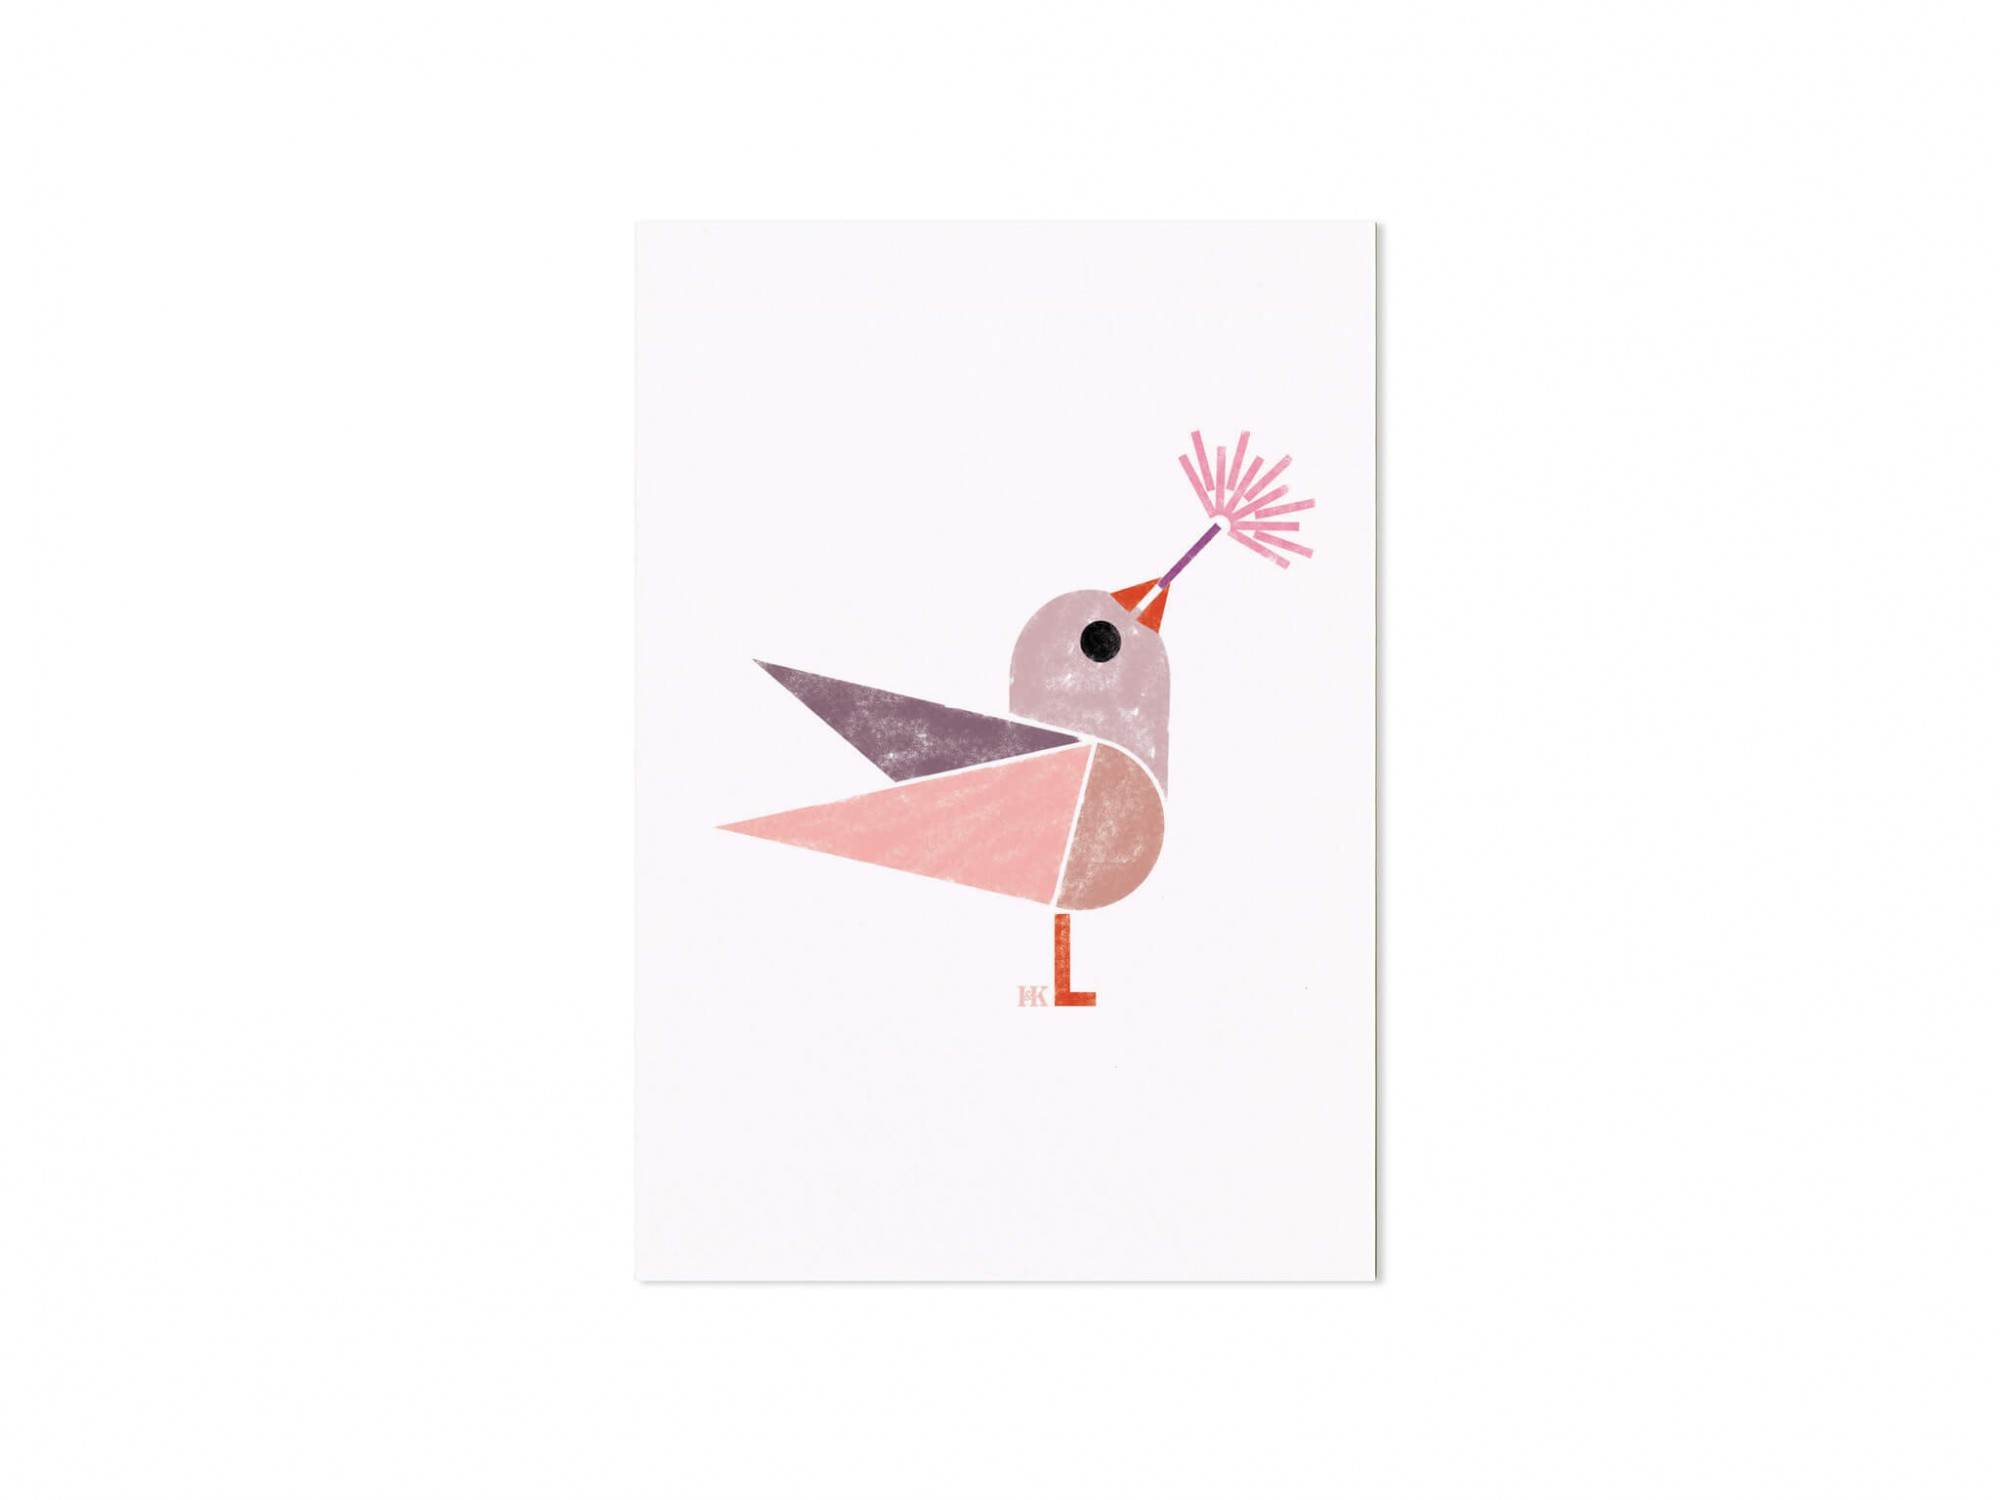 carte postale illustration birdy teinte rose pastel